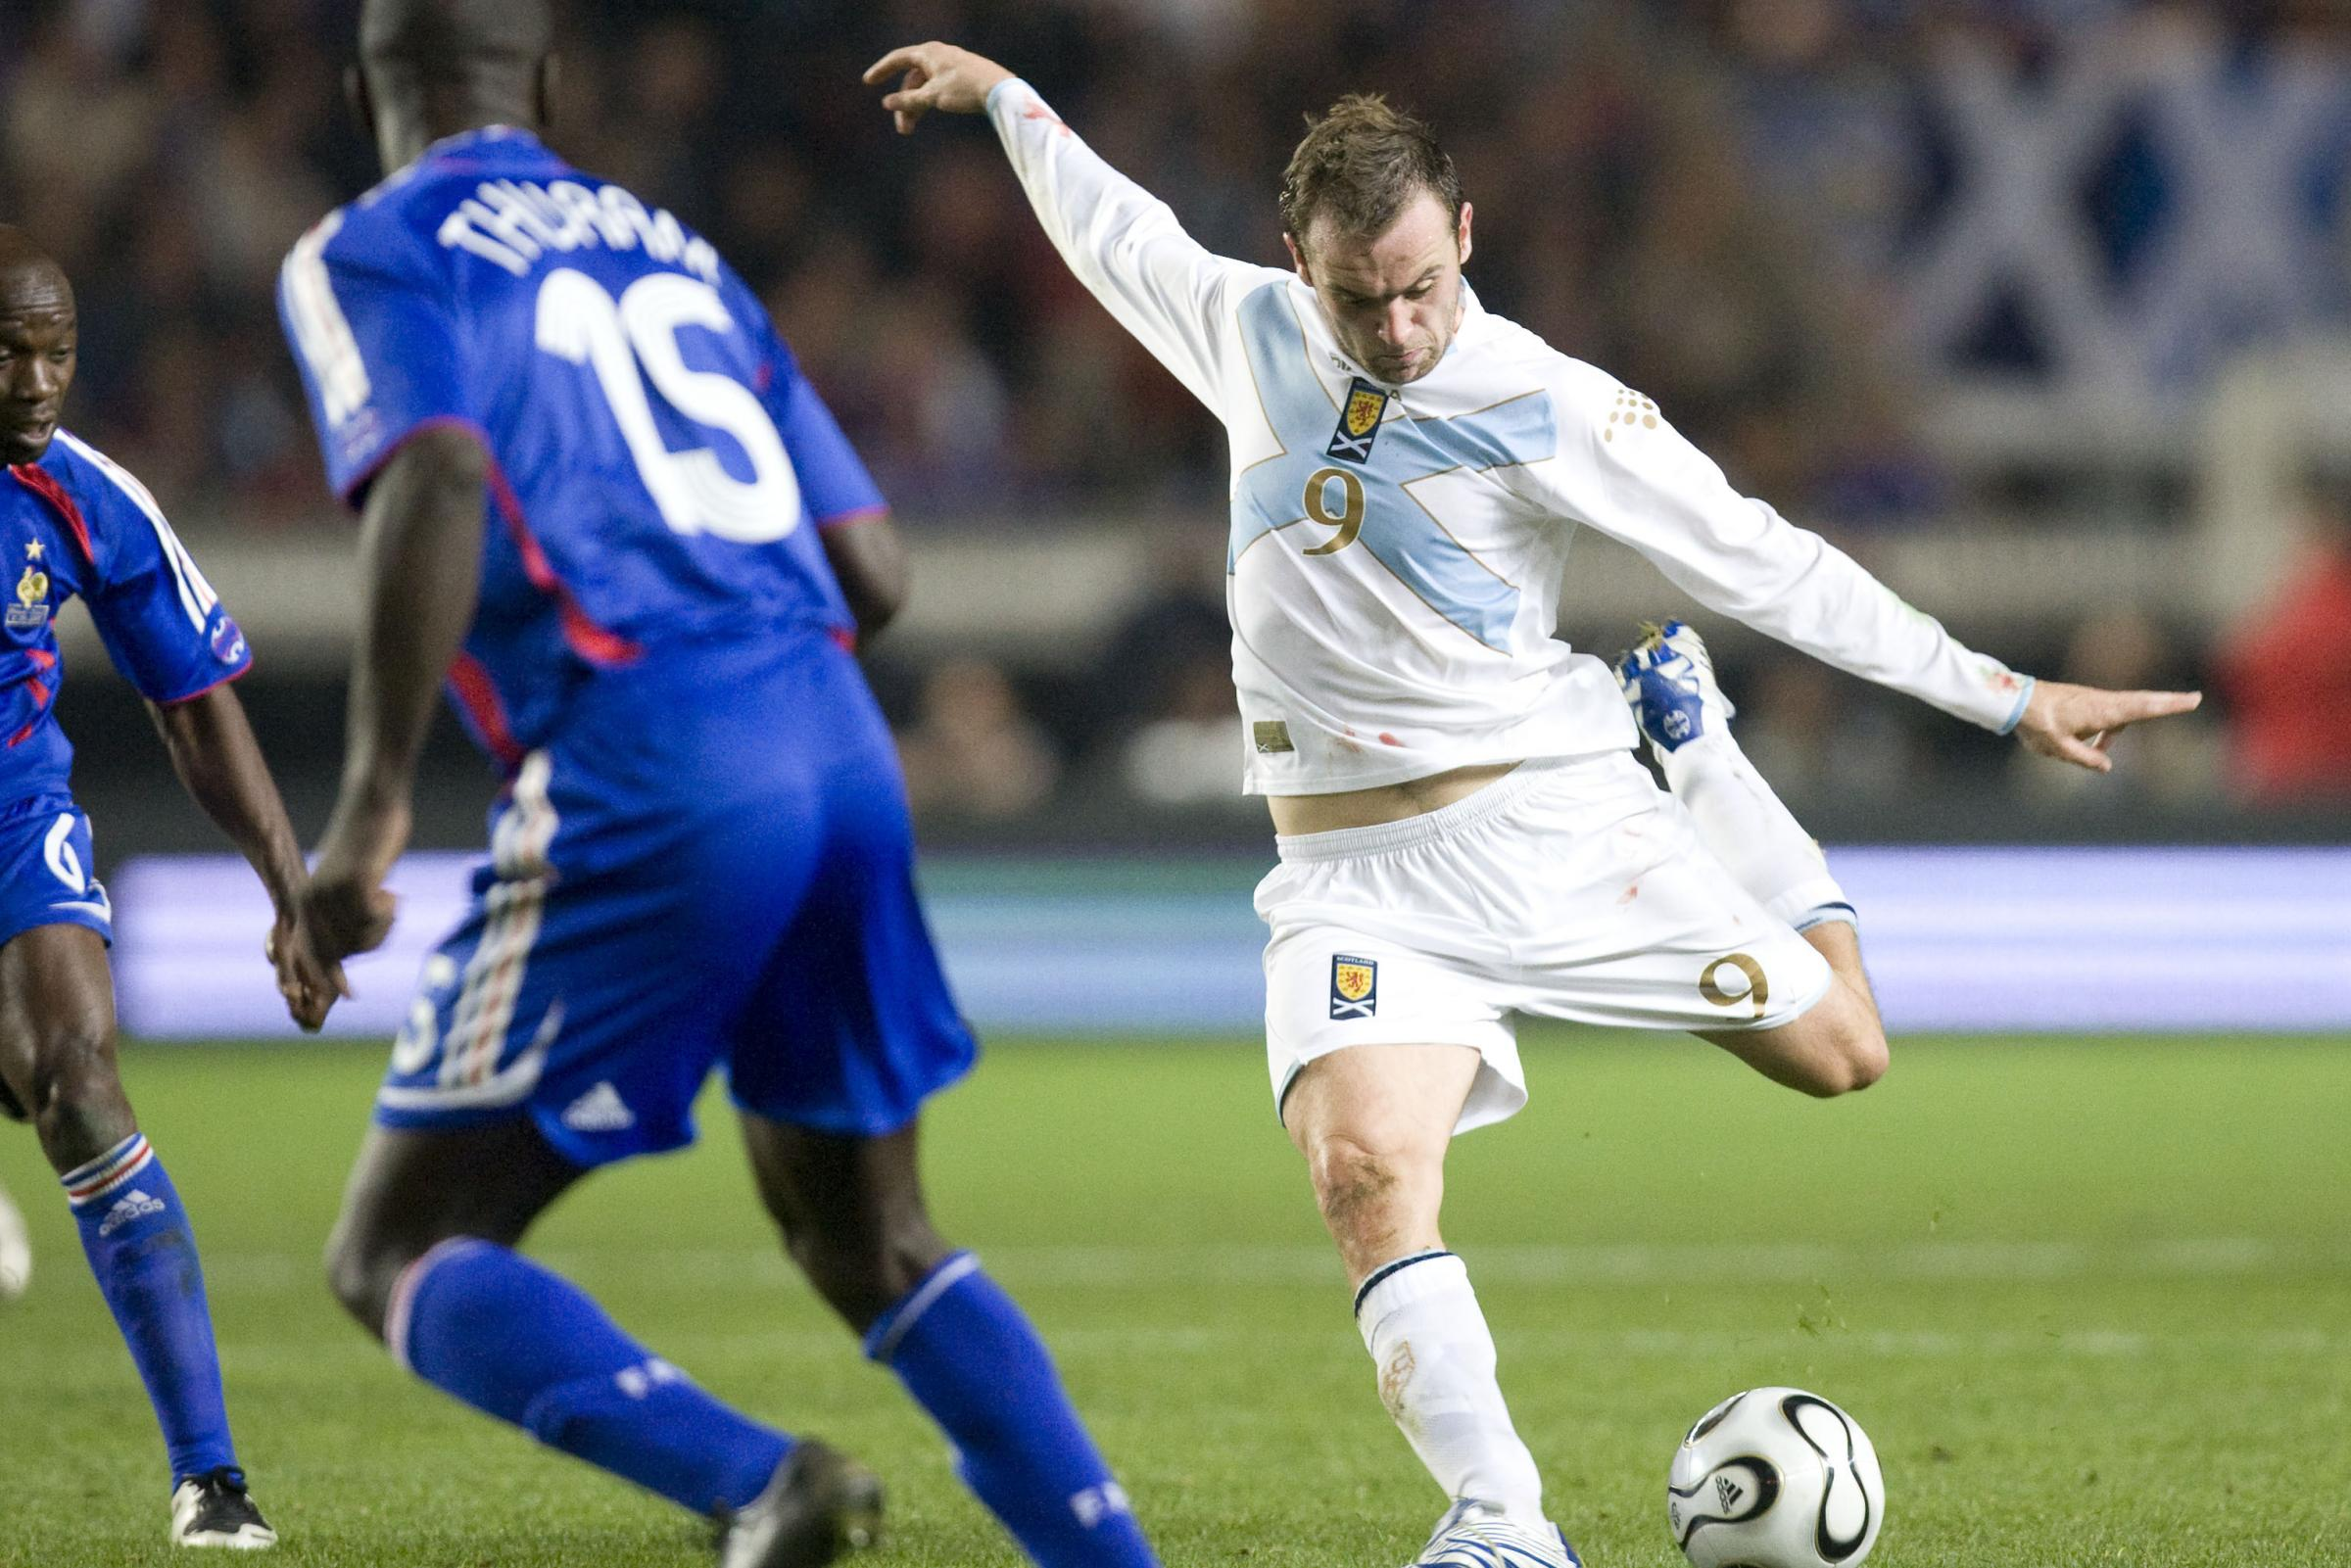 Graeme McGarry: James McFadden was magic, but is he among the greatest Scotland players of all time?